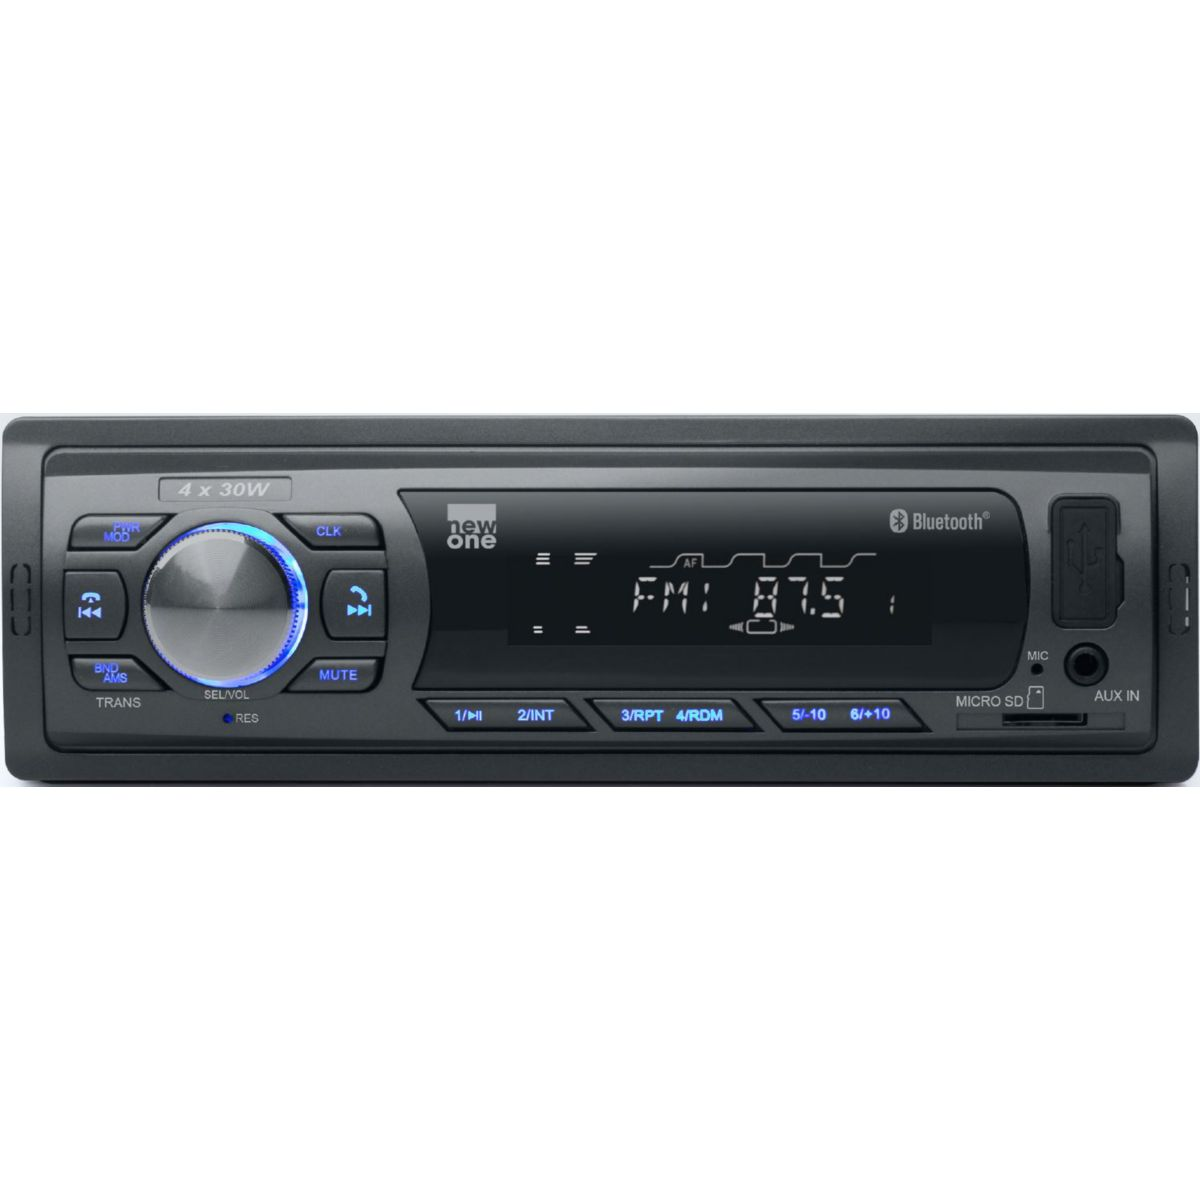 Autoradio MP3 NEWONE AR-380 BT (photo)